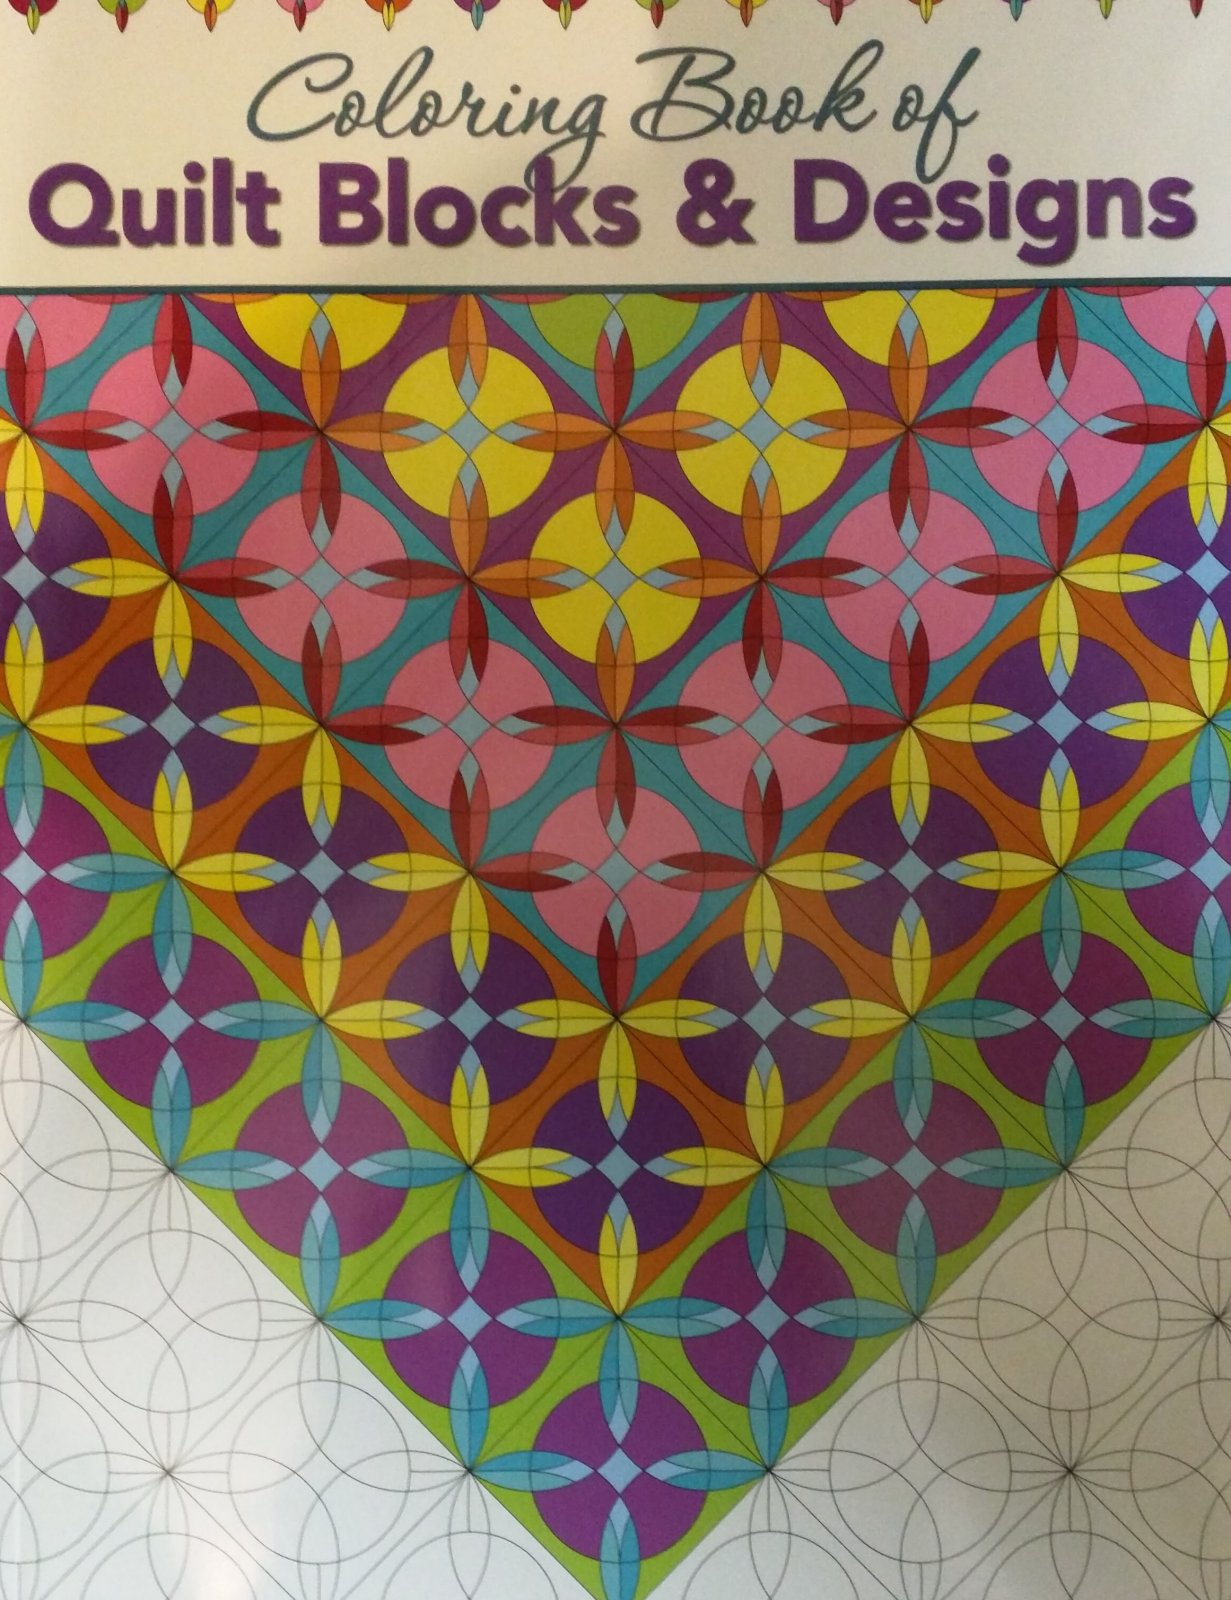 Coloring Book of Creative Quilt Designs